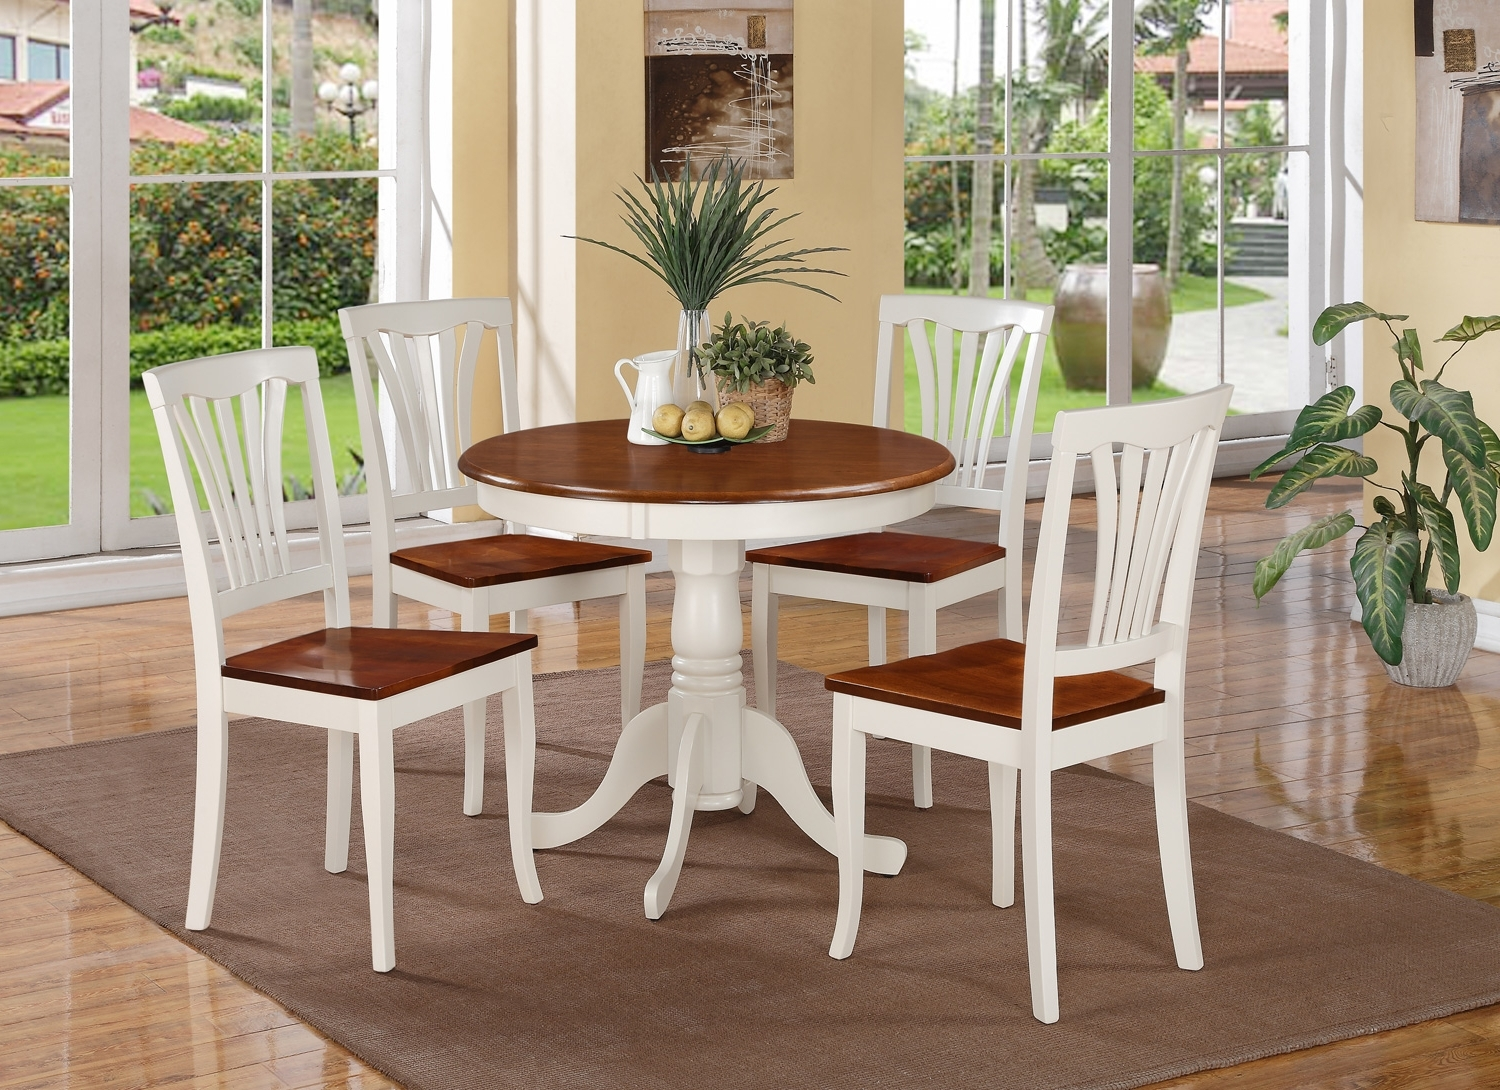 5 Pc Round Small Table Kitchen Table And 4 Wood Chairs Buttermilk Finish throughout Most Popular Small Dining Sets